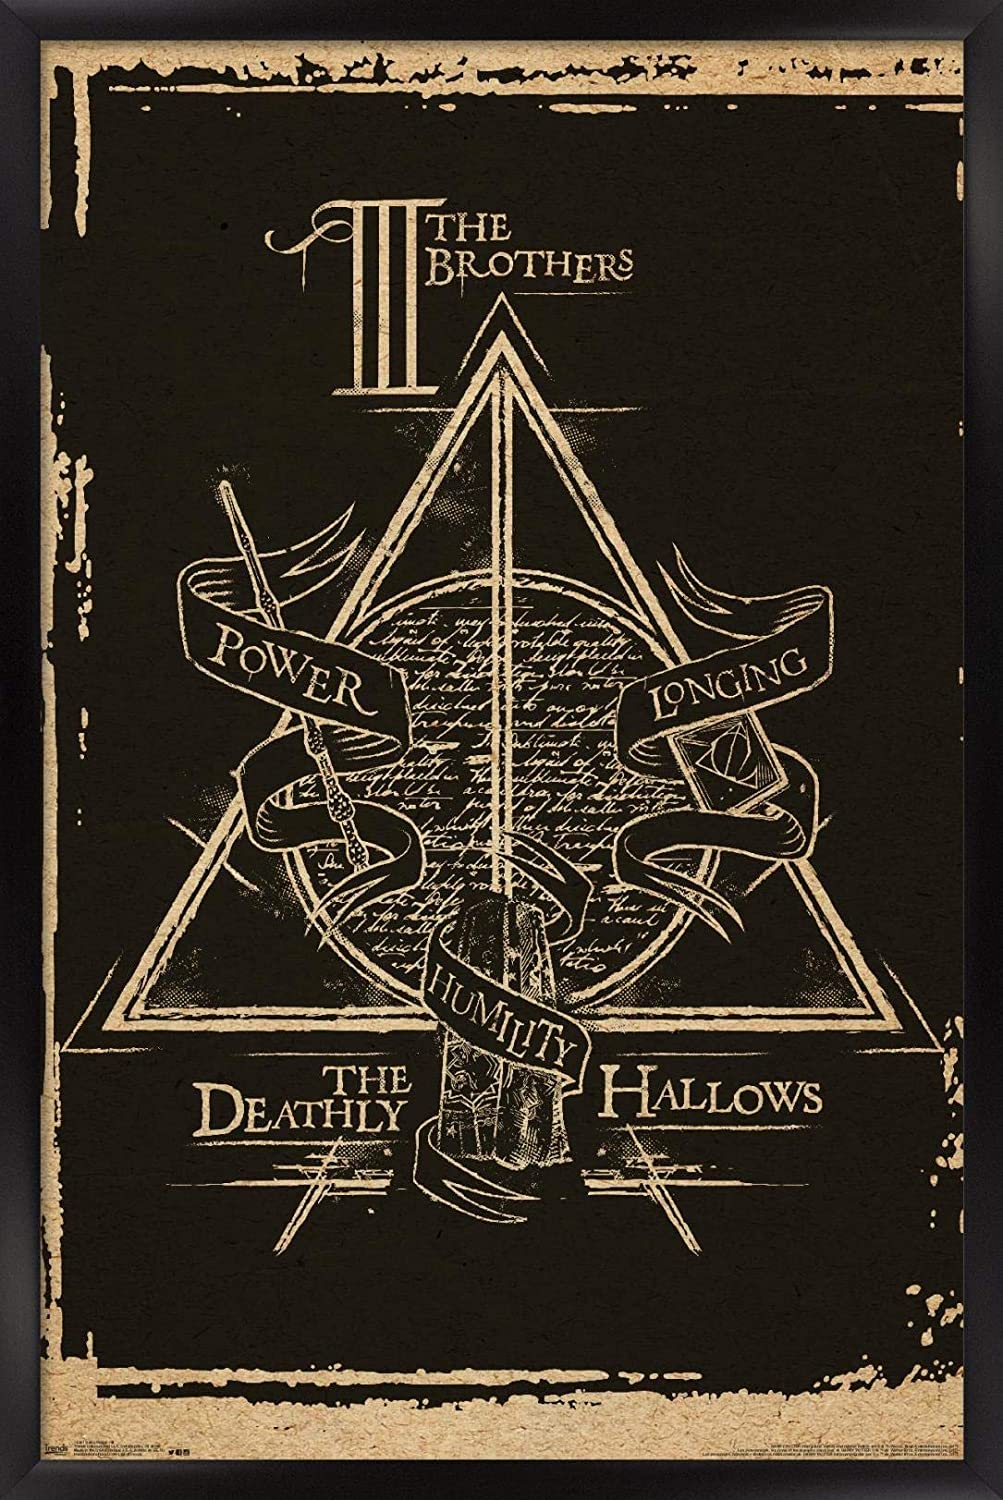 """Trends International Harry Potter - Deathly Hallows - The Brothers - Symbol Wall Poster, 22.375"""" x 34"""", Black Framed Version"""